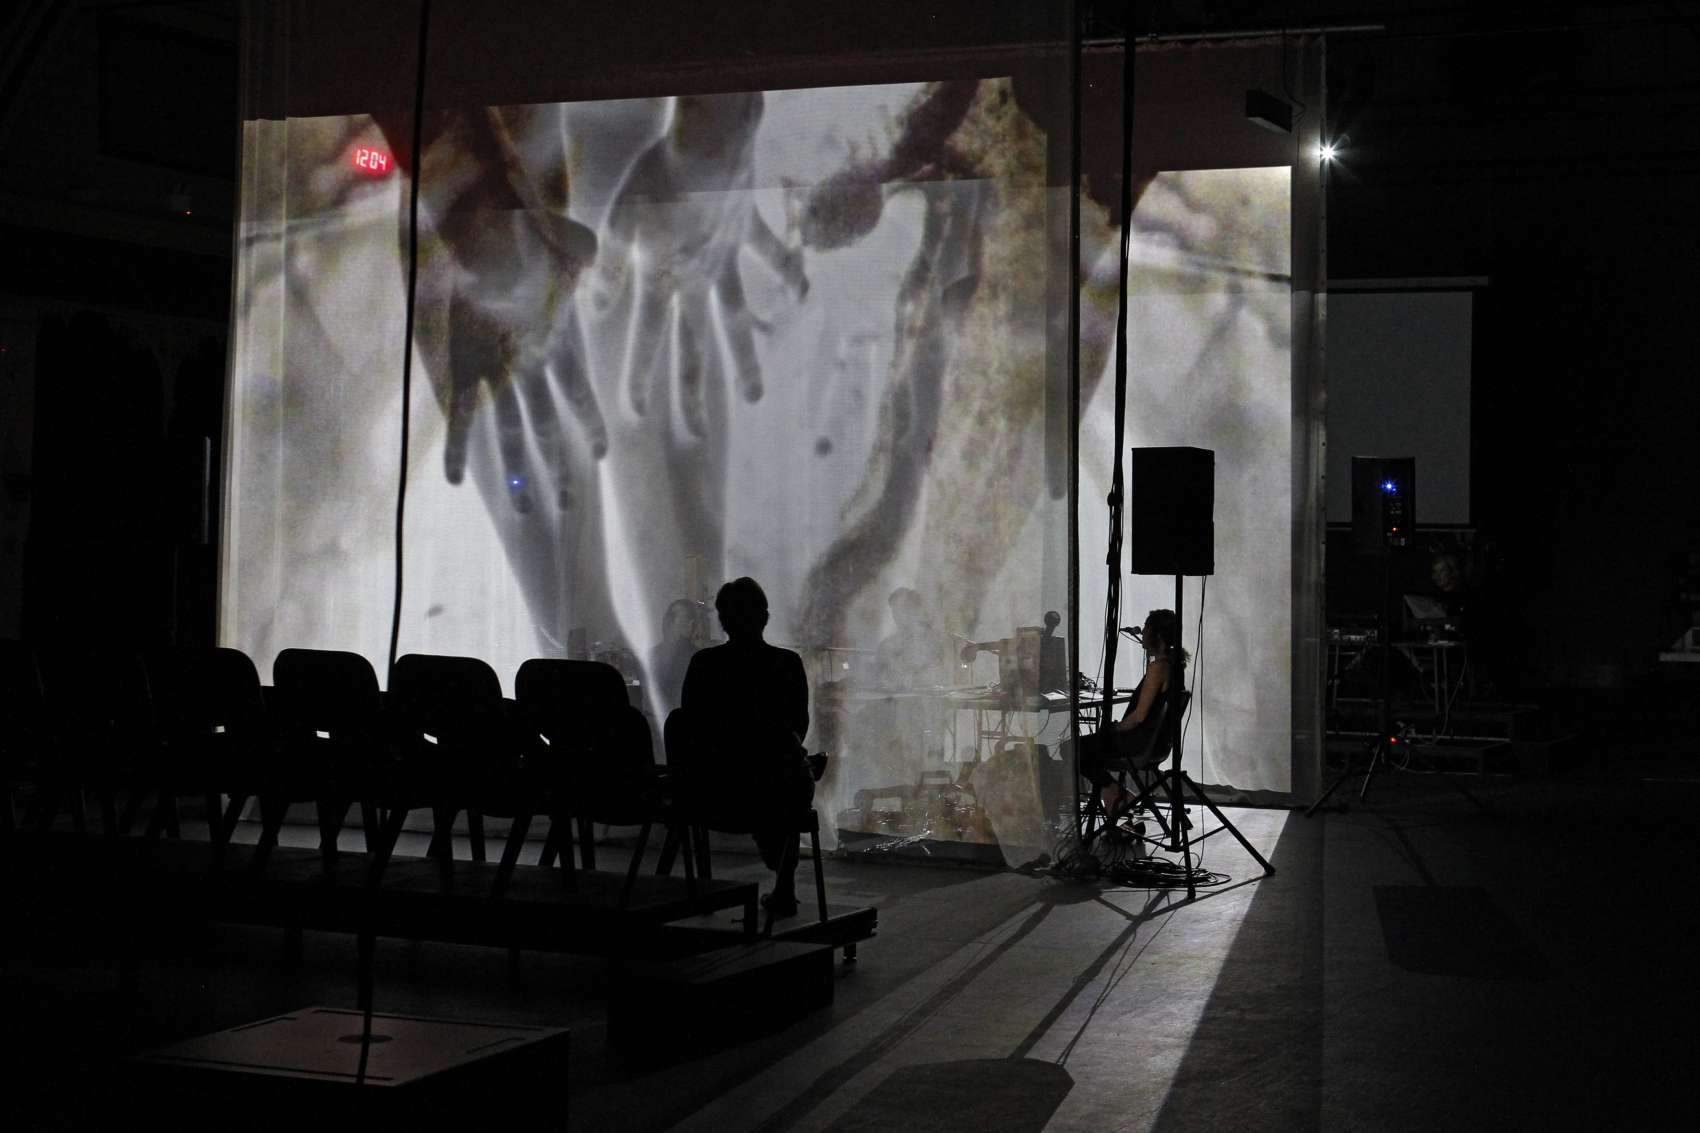 Shot of empty seating bank and two performers seated with large screens on which images of hands are projected